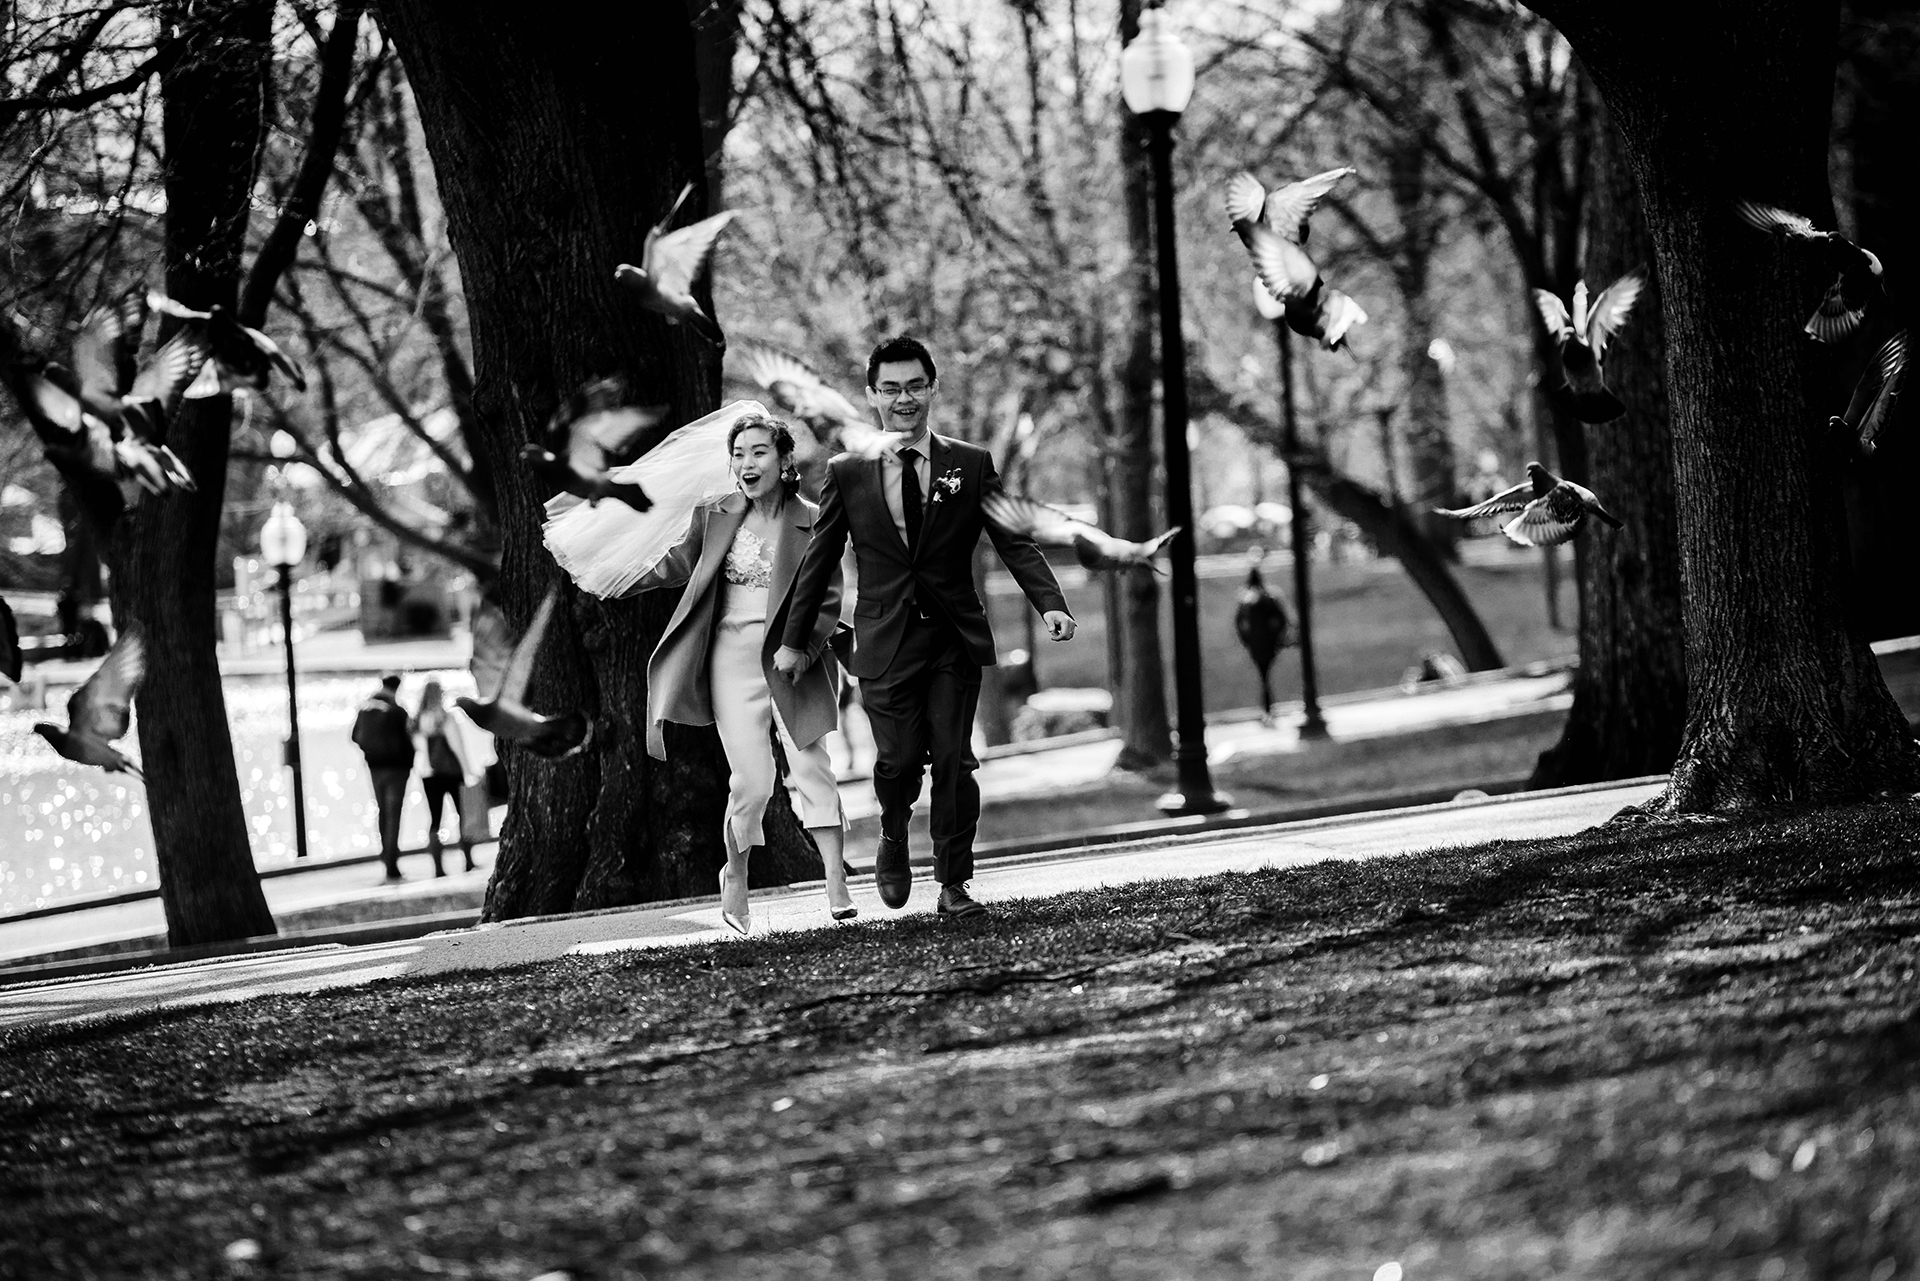 Boston City Hall Elopements - Boston, MA Elopement Photographer   Feeling lighthearted and carefree, the couple chased birds